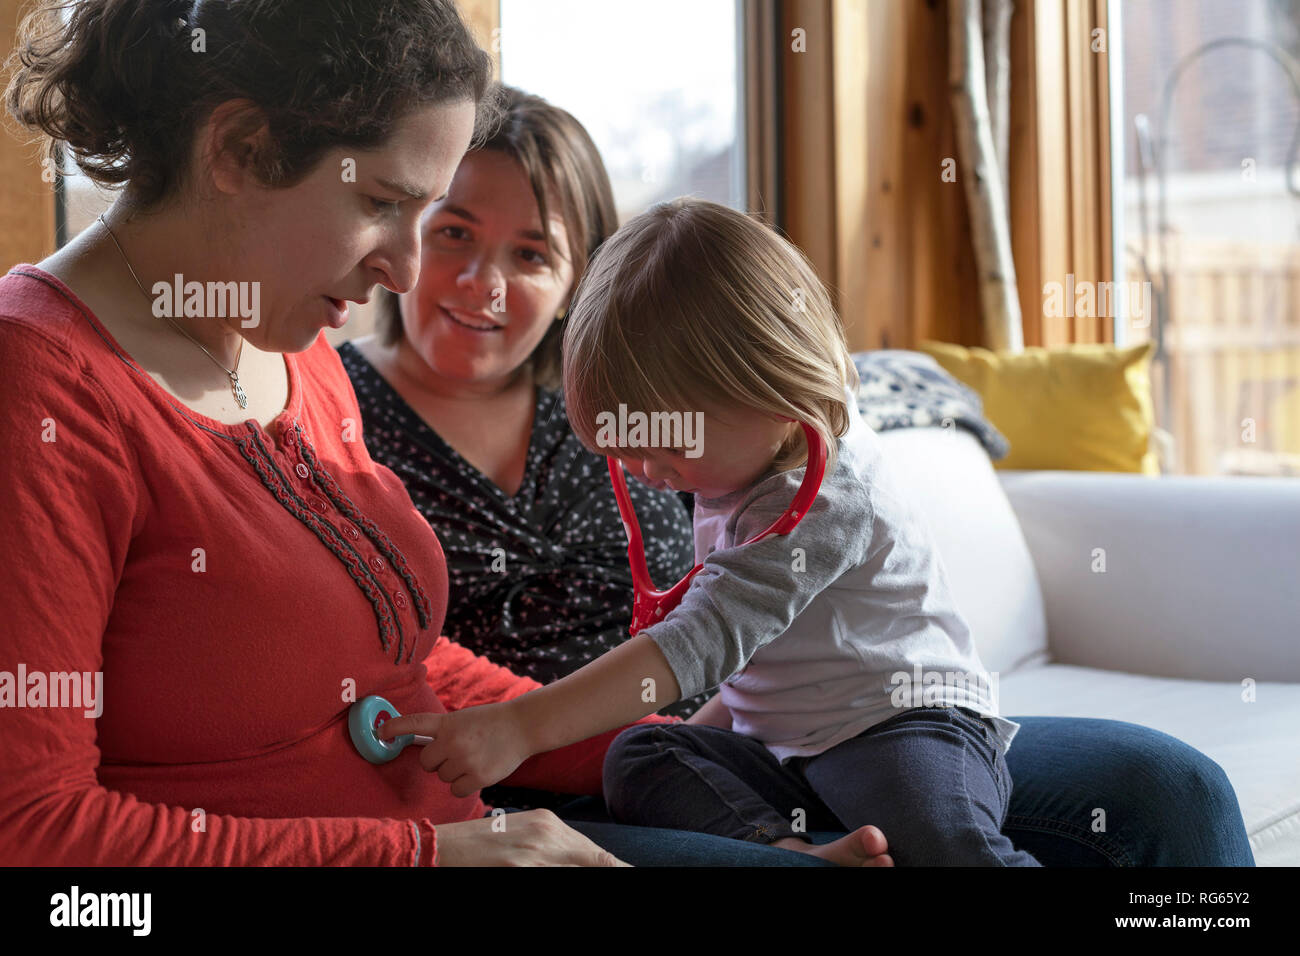 A toddler uses a stethoscope on a pregnant woman. - Stock Image